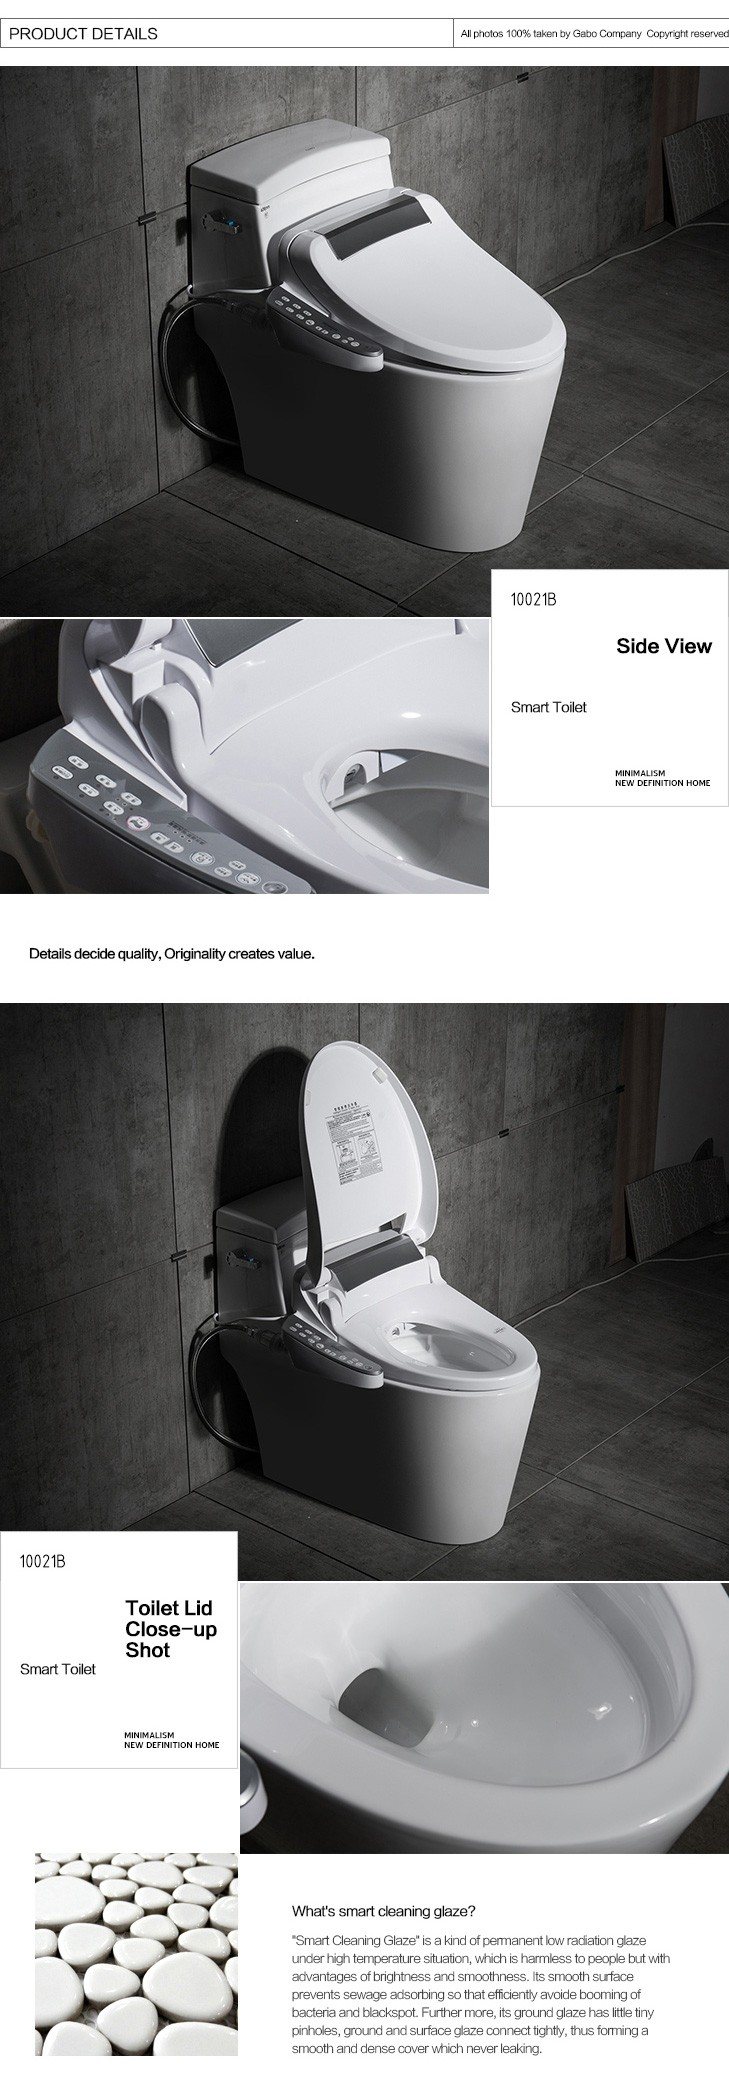 Japanese Heated Illuminated Toilet Bowl Buy Illuminated Toilet Bowl Product